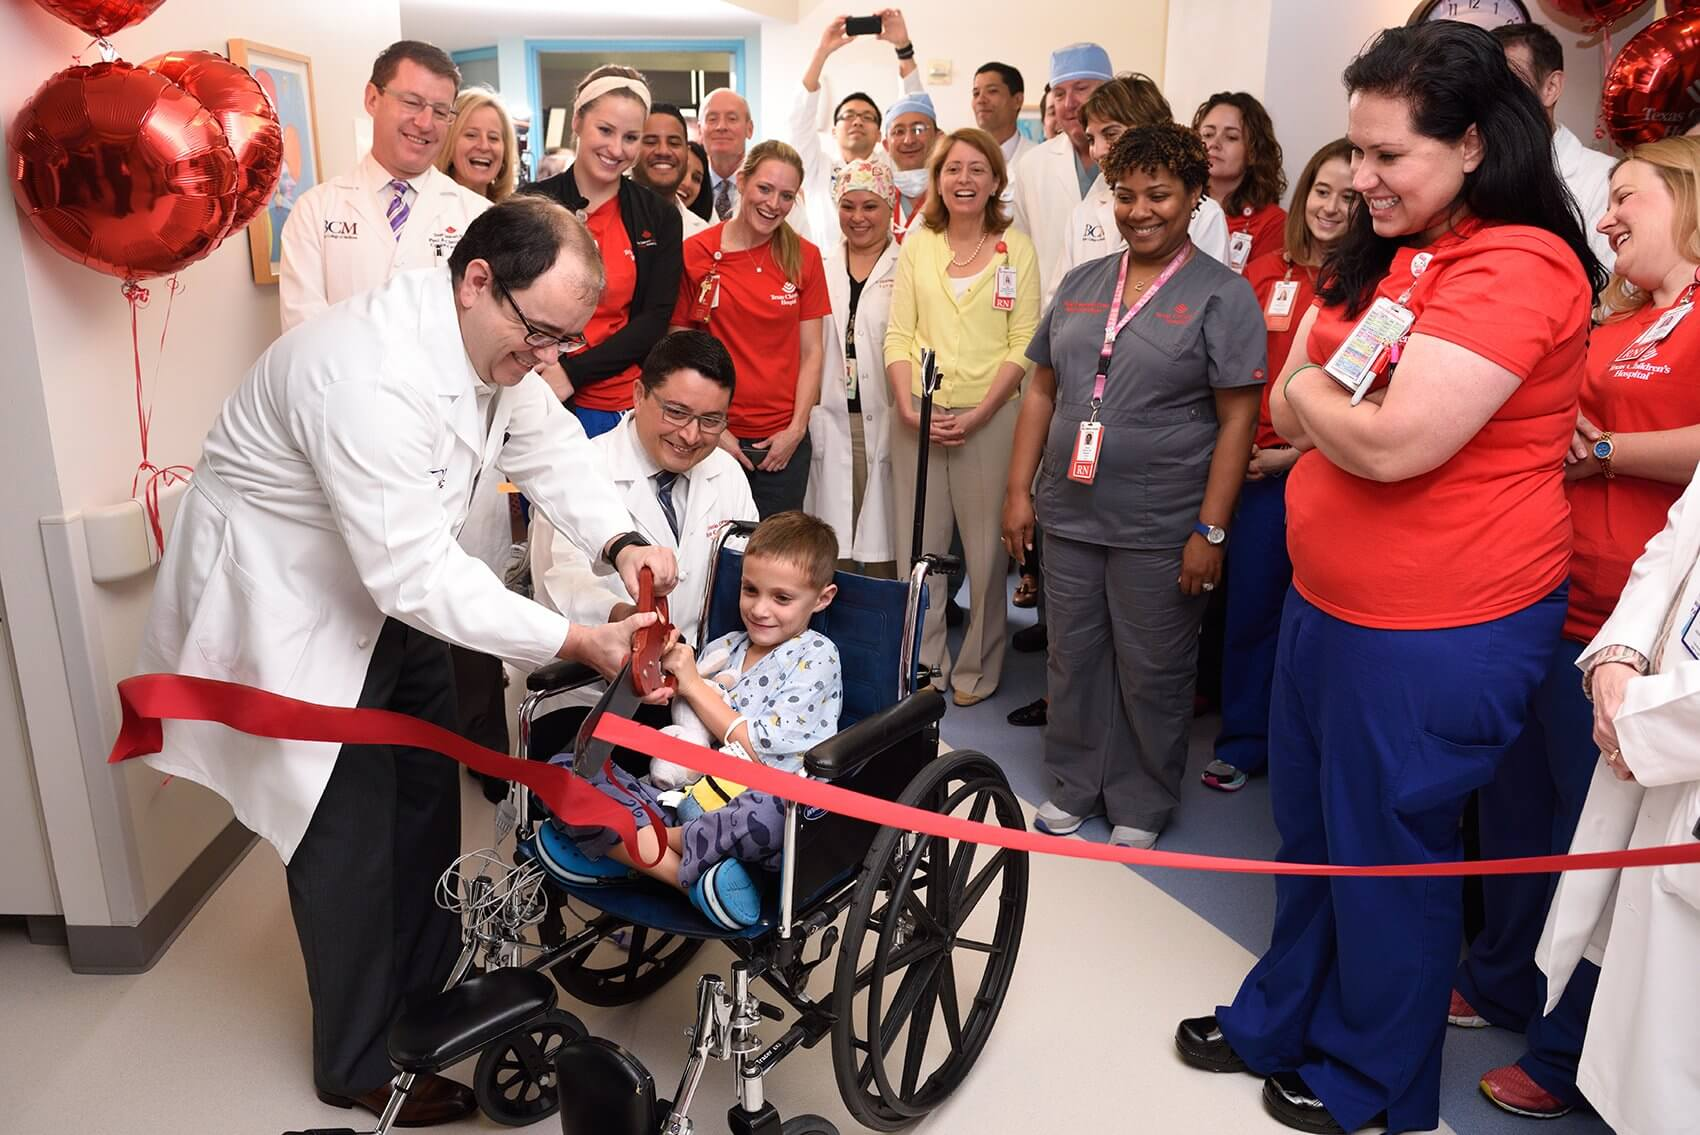 Perez and Drs. Antonio Cabrera and Jack Price cut the ribbon on the new unit. (Credit: Paul Vincent Kuntz/Texas Children's Hospital)